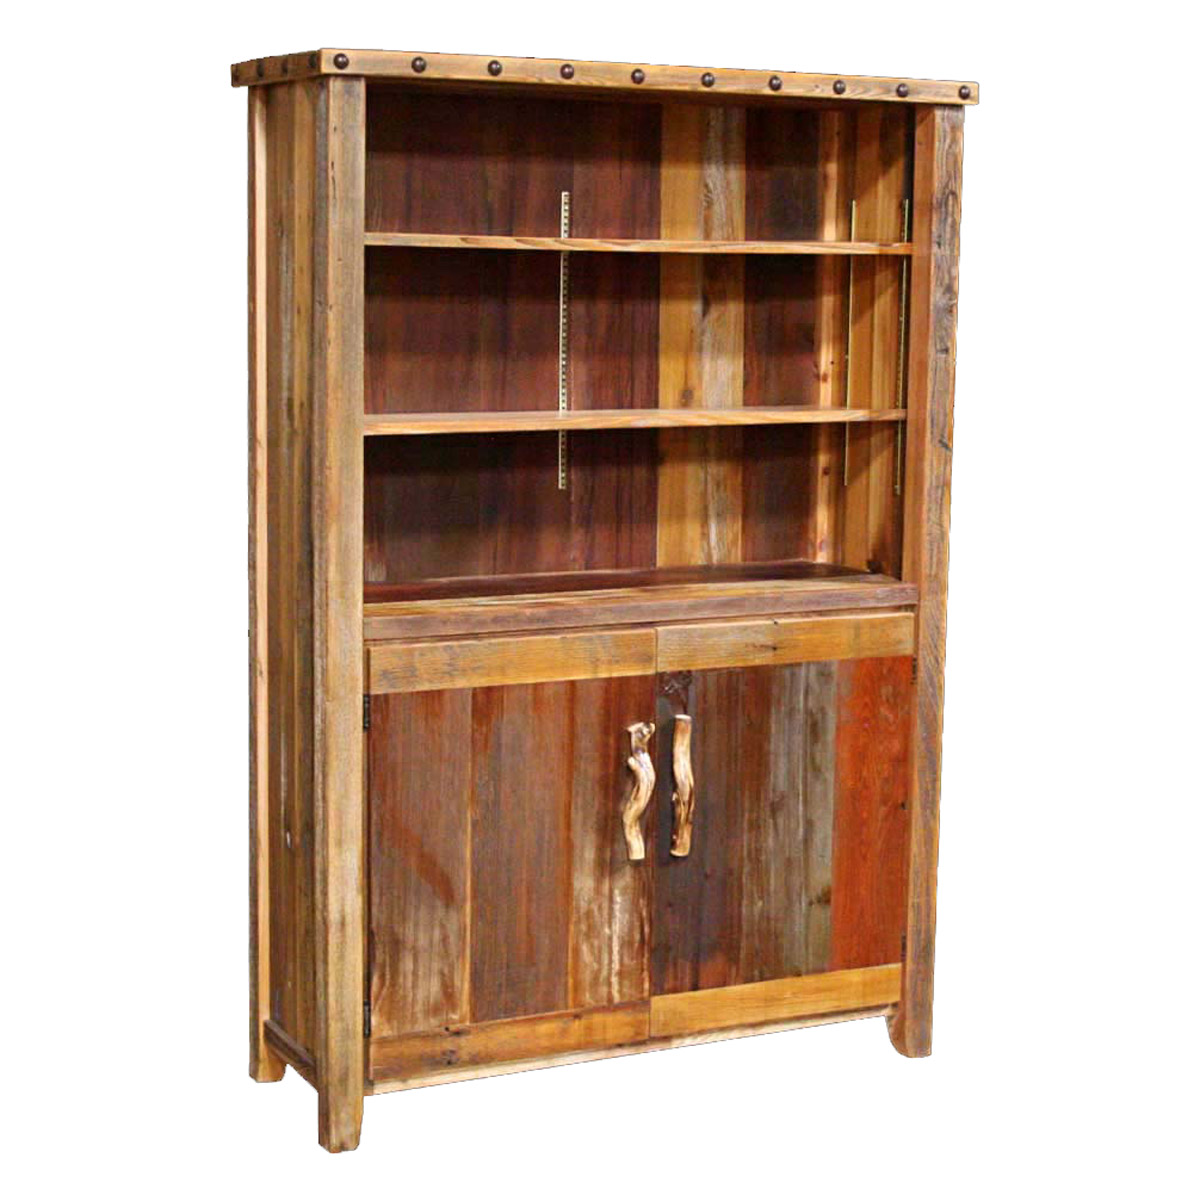 Black Forest Decor Barnwood 2 door bookcase with nailheads